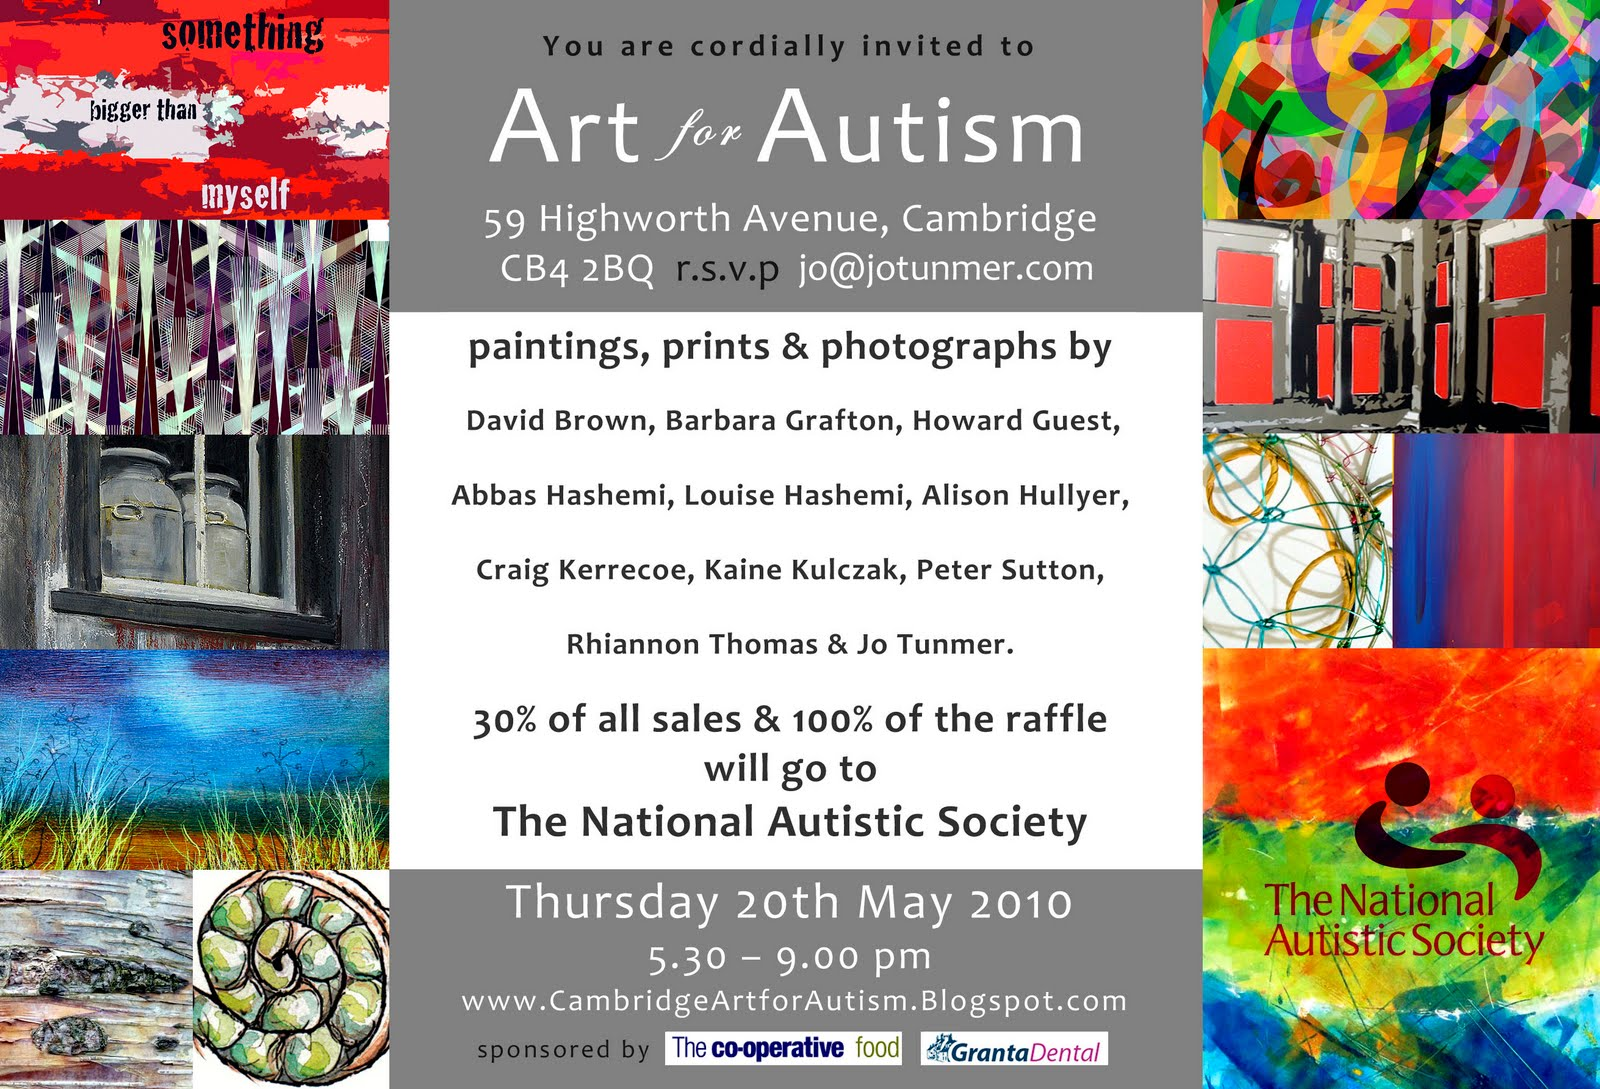 Alison hullyer art for autism whom i exhibited with in the christmas 10 show has gathered a group of eleven artist friends and organised an invitation only art exhibition event for stopboris Image collections